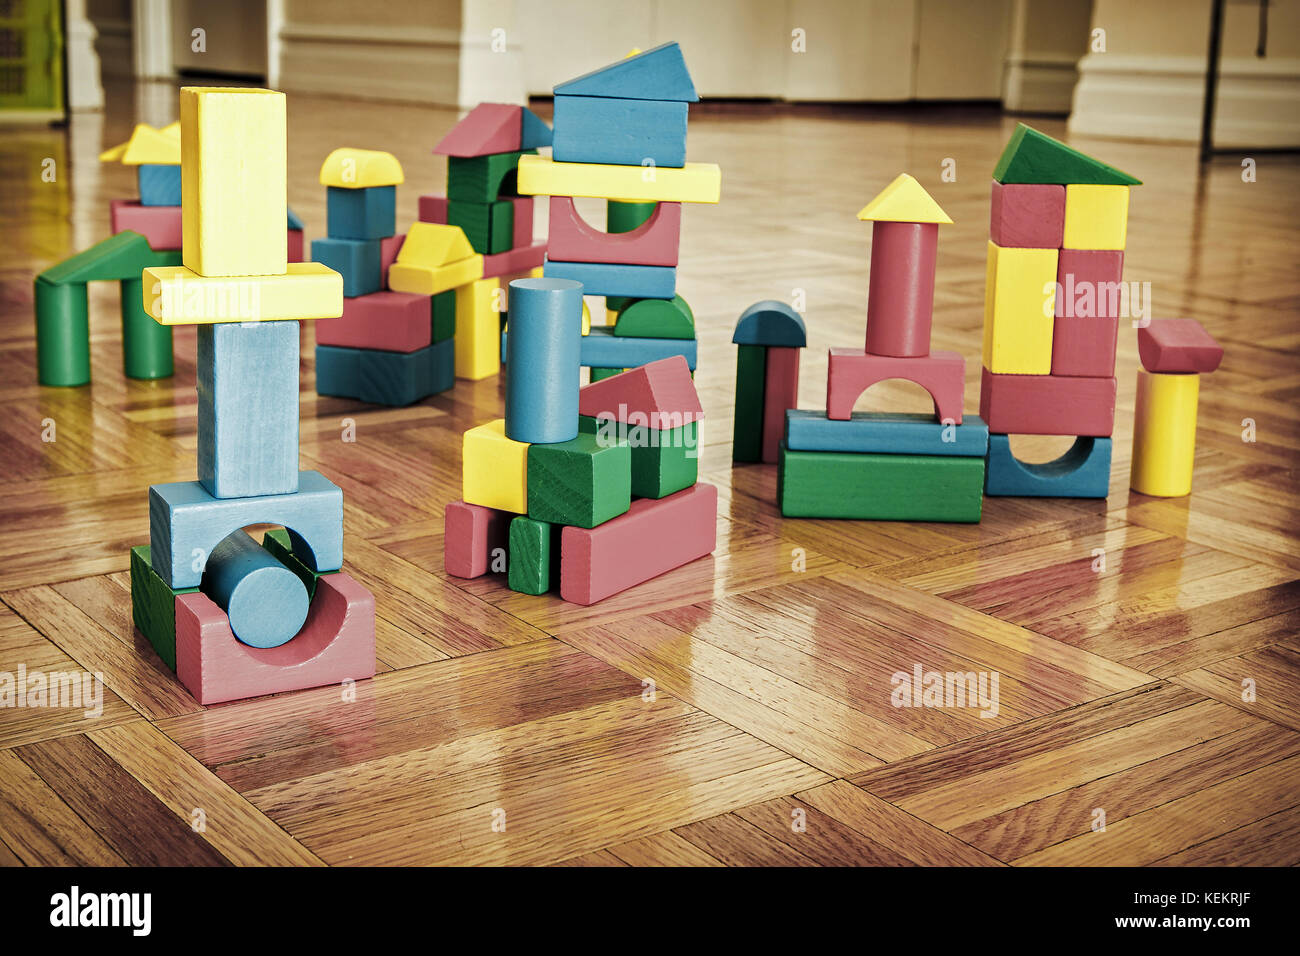 Colorful wooden building blocks on hardwood floor. Stock Photo